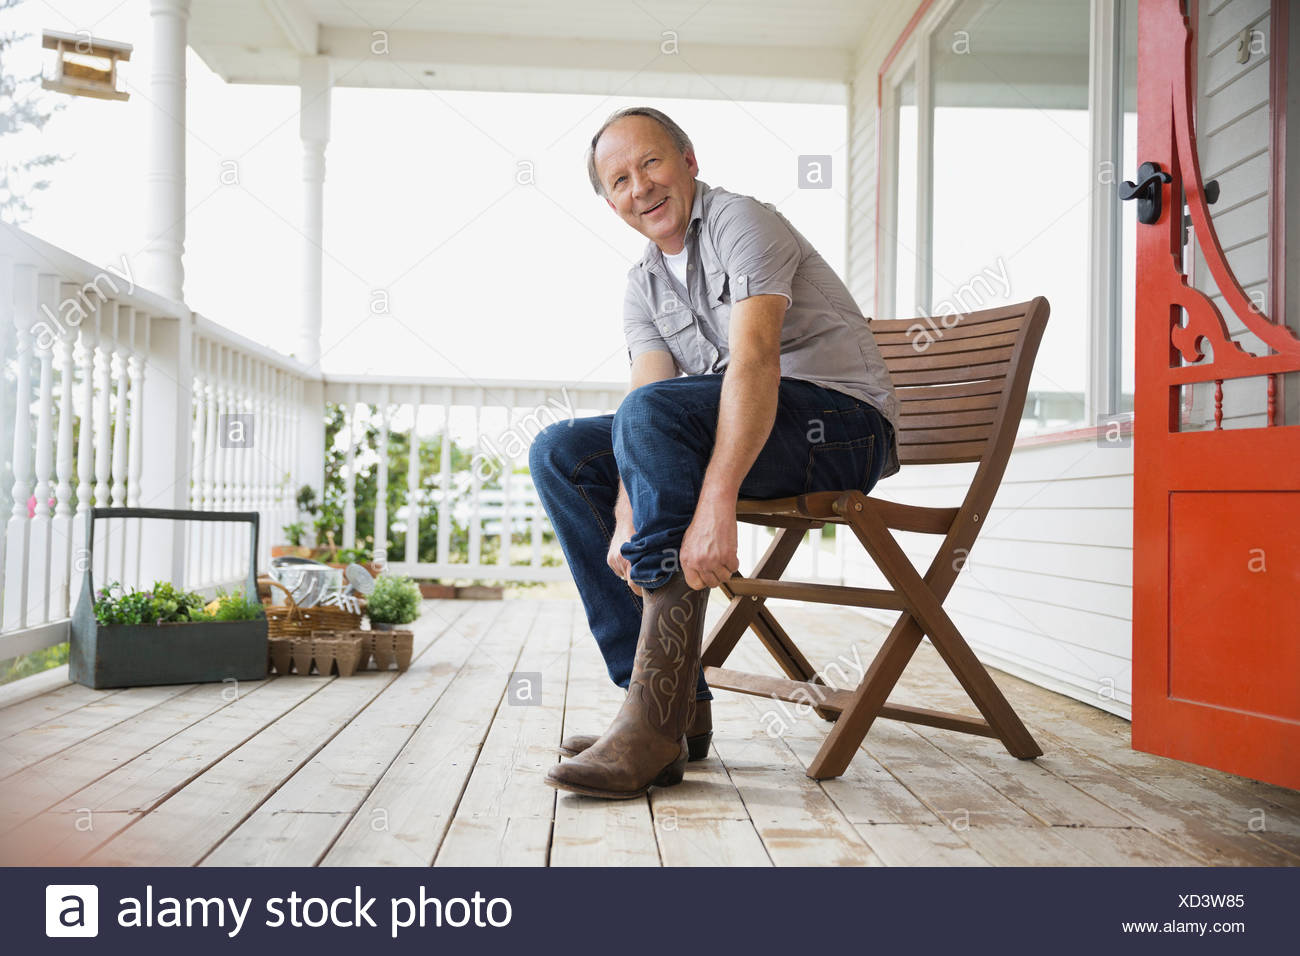 Man pulling on cowboy boots - Stock Image